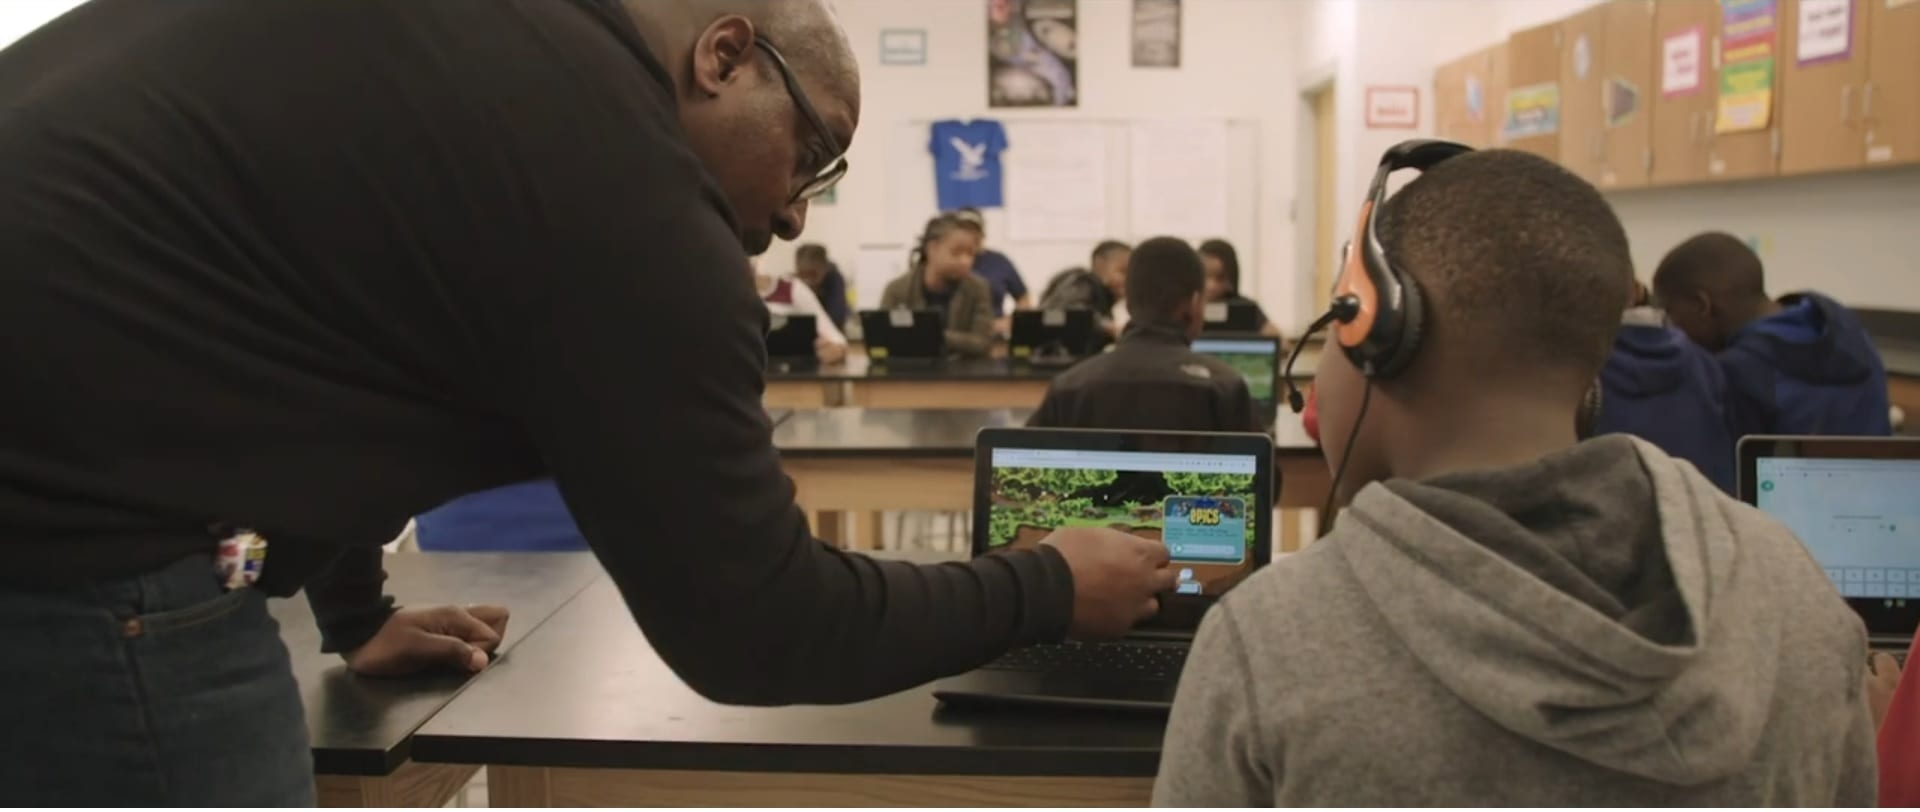 Teacher working with students in Baltimore using Lenovo devices to learn.